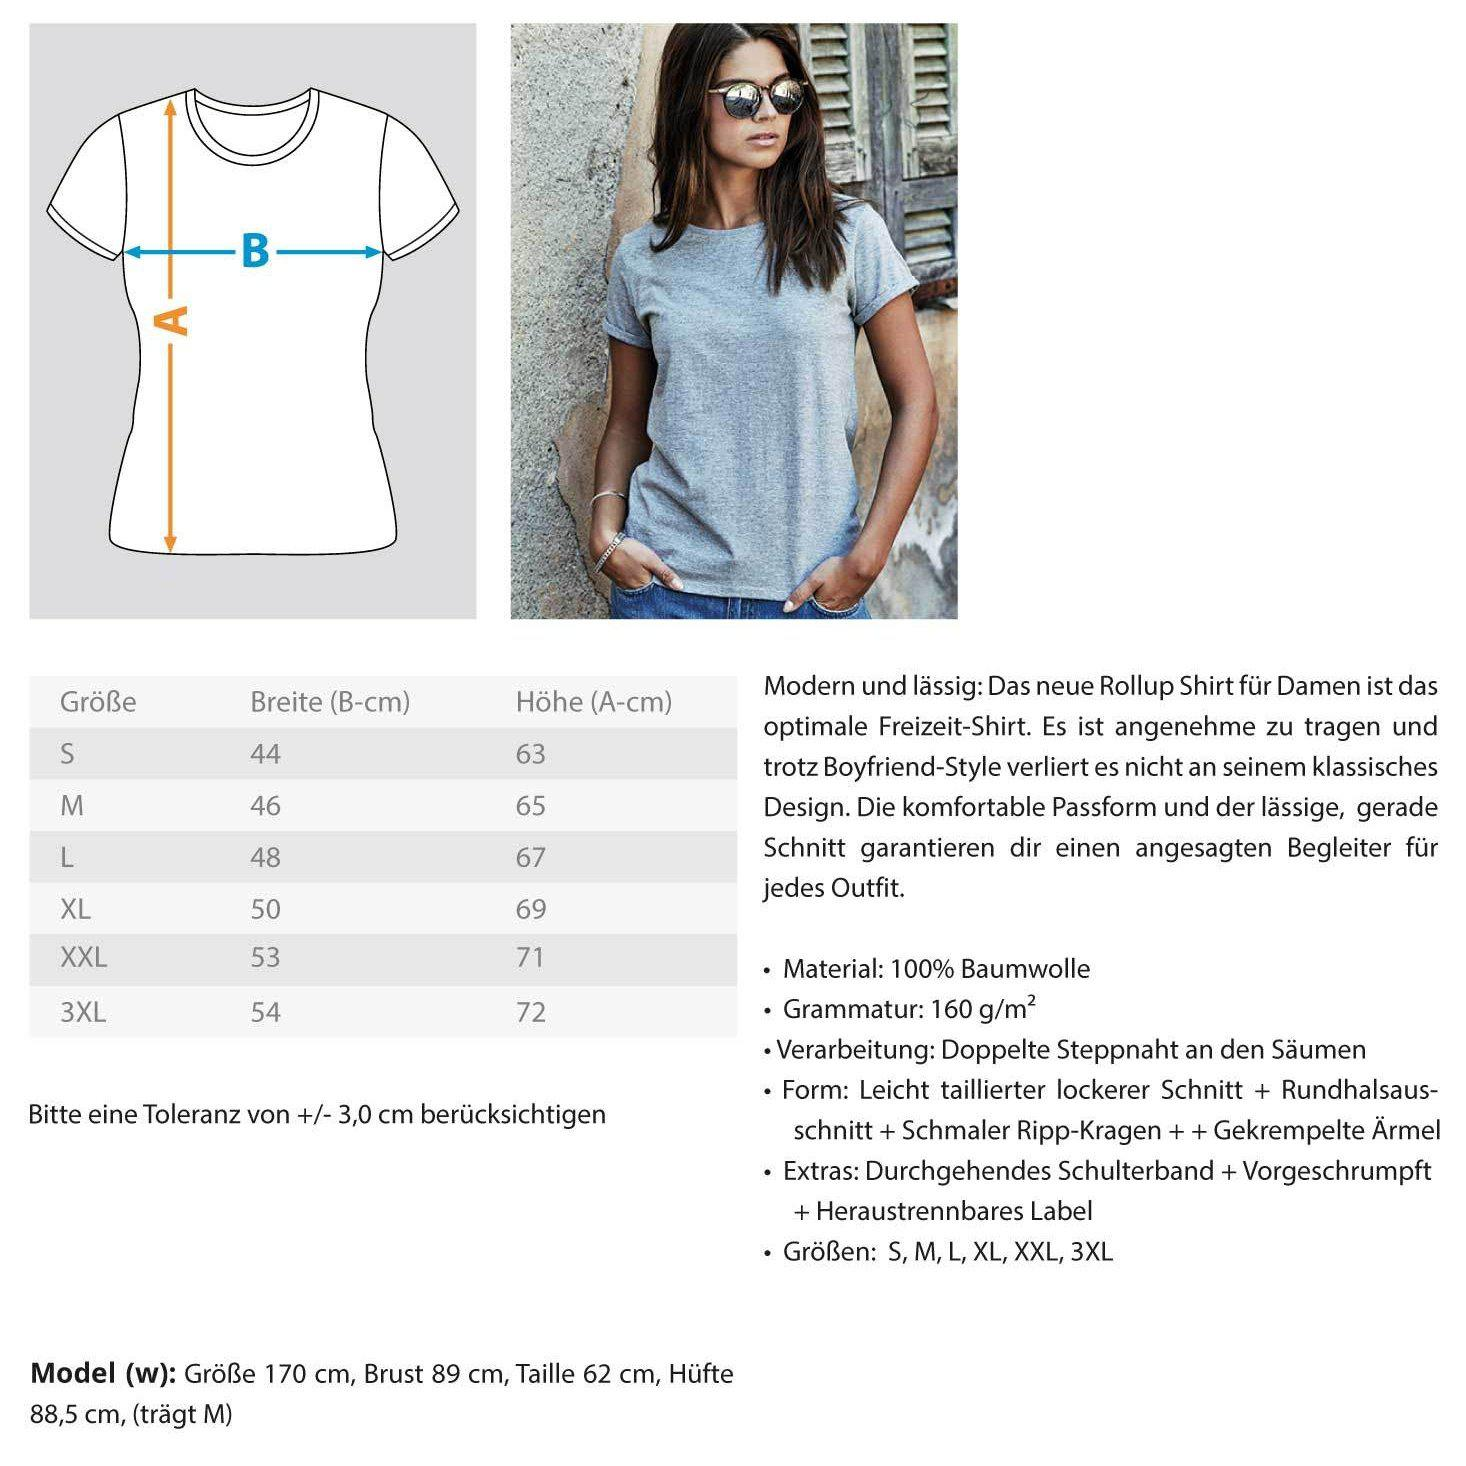 Stay High on Techno - Rave On!® - Damen RollUp Shirt Women Rollup Shirt - Rave On!® der Club & Techno Szene Shop für Coole Junge Mode Streetwear Style & Fashion Outfits + Sexy Festival 420 Stuff